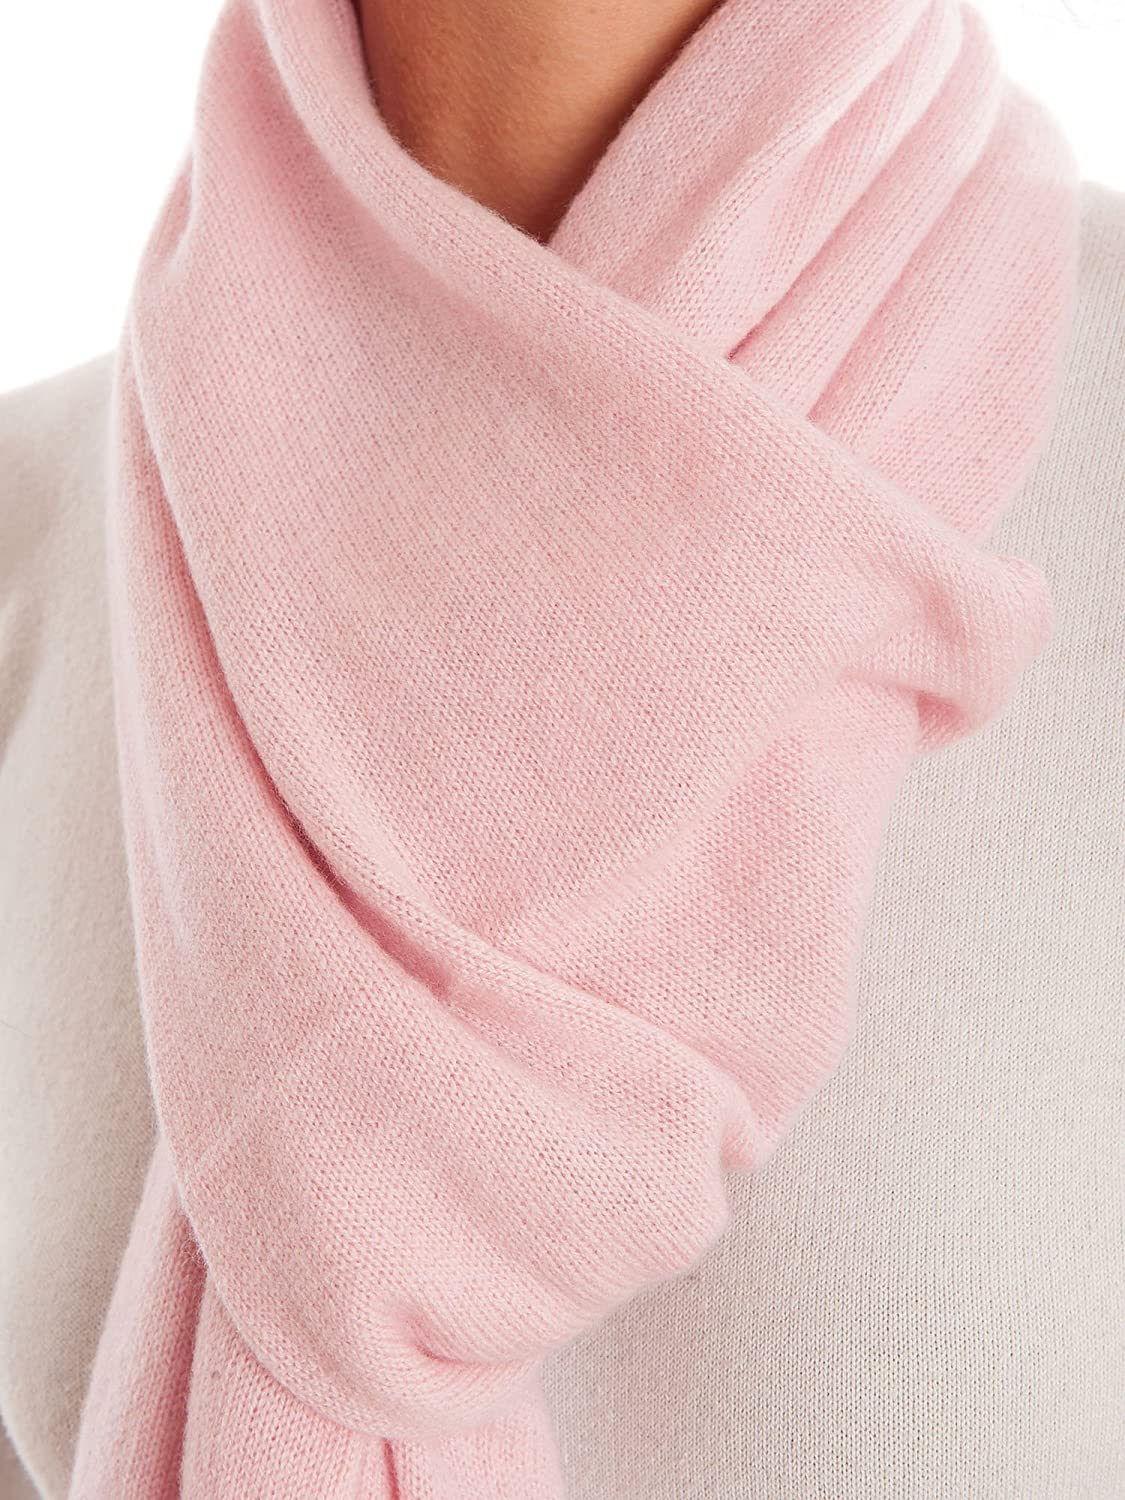 Dalle Piane Cashmere - Scarf 100% cashmere - Made in Italy - Woman/Man, Color: Pink, One size